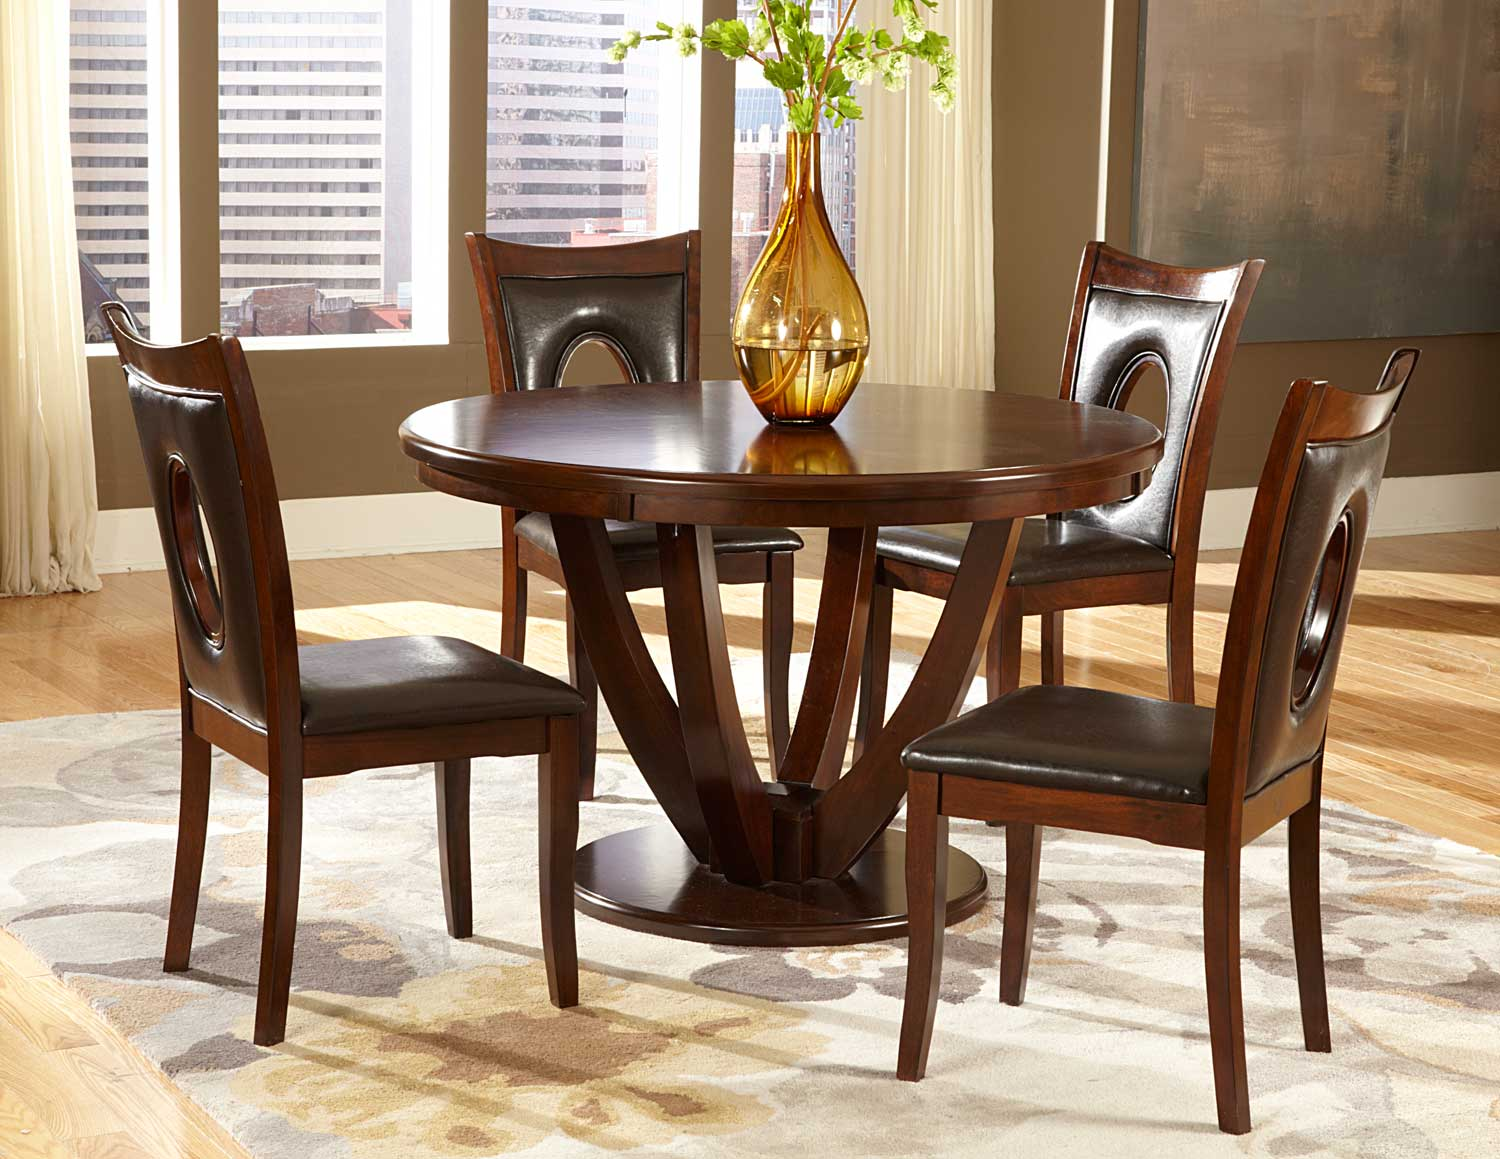 Homelegance Vanbure Round Dining Set Cherry D2568 48 At